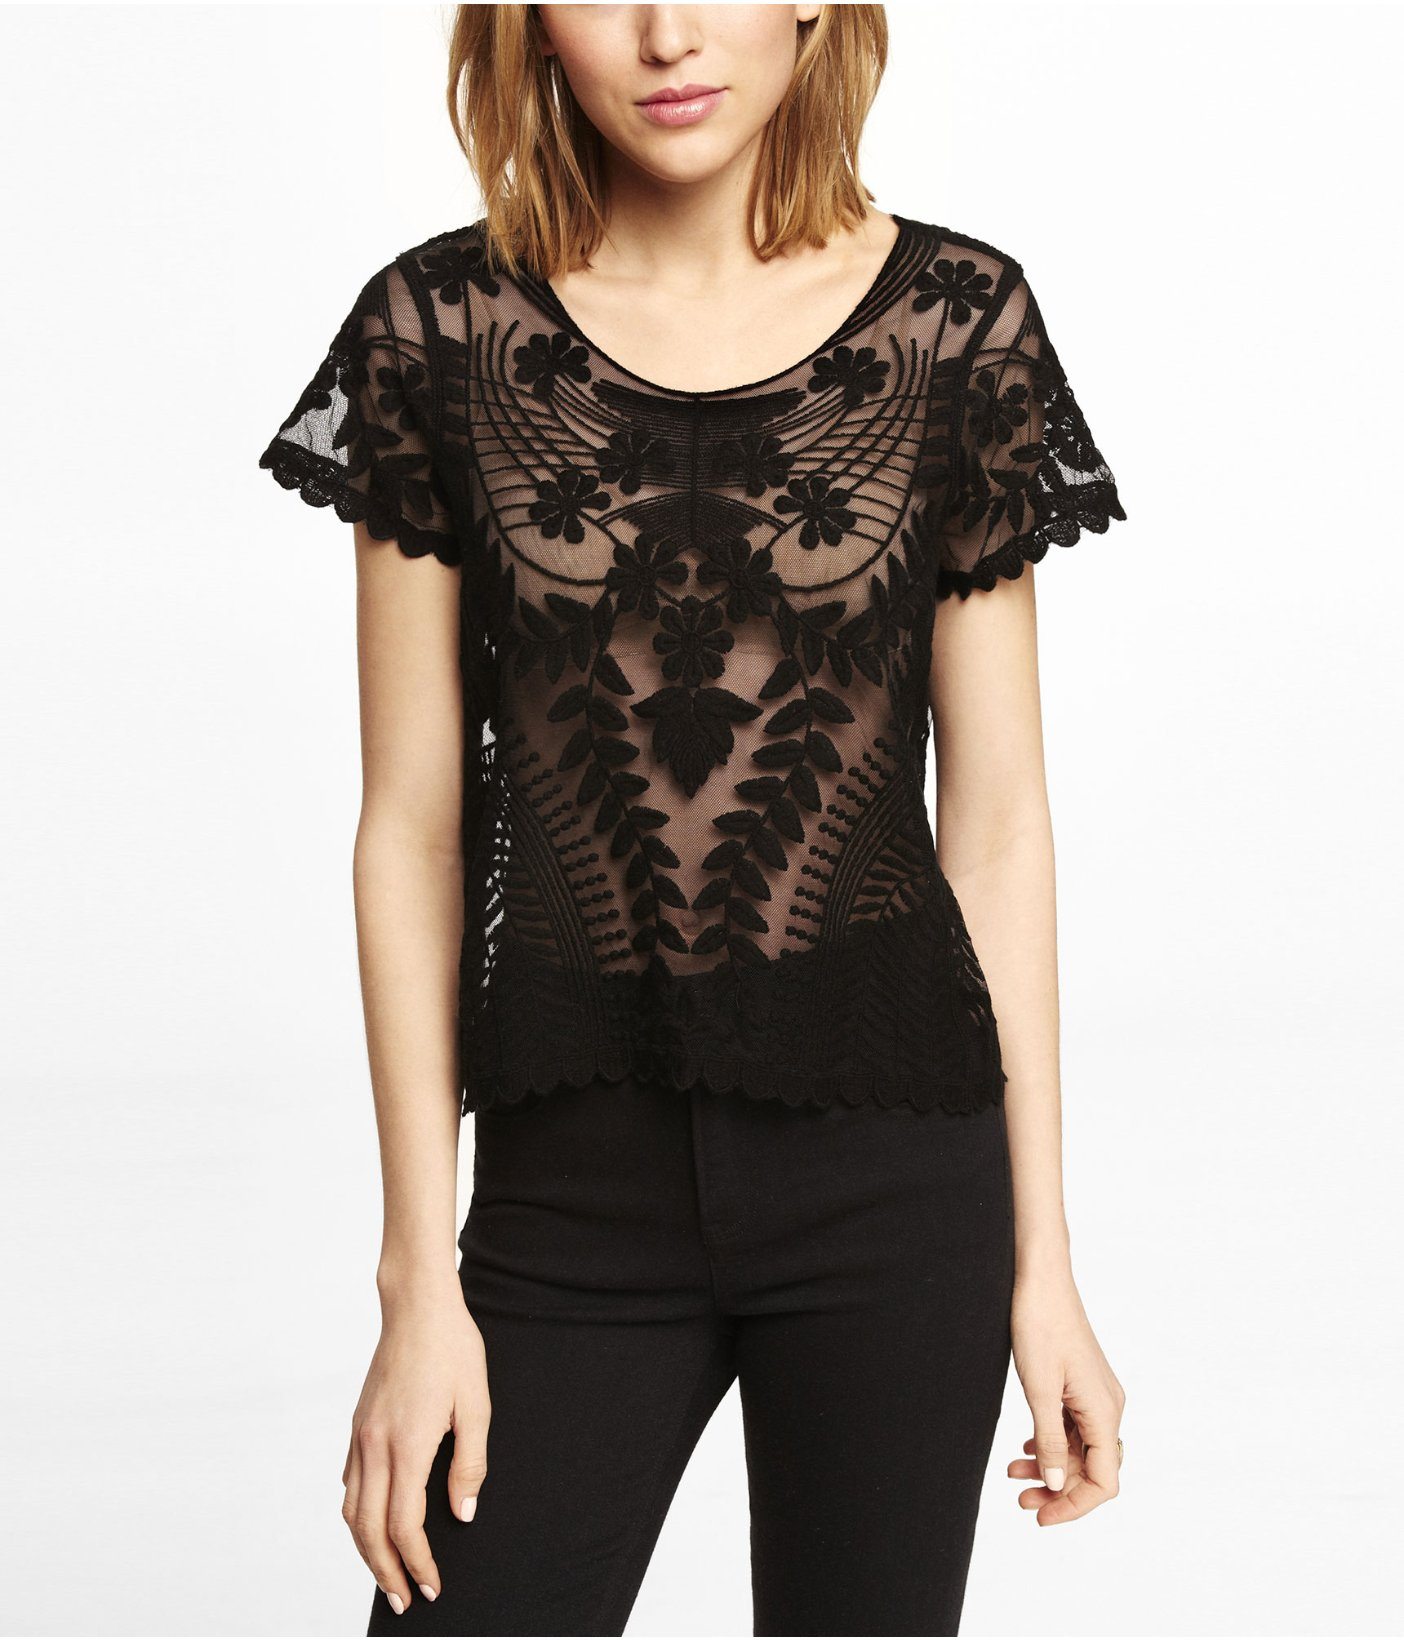 Black t shirt with lace - Short Sleeve Lace Shirt Re Re